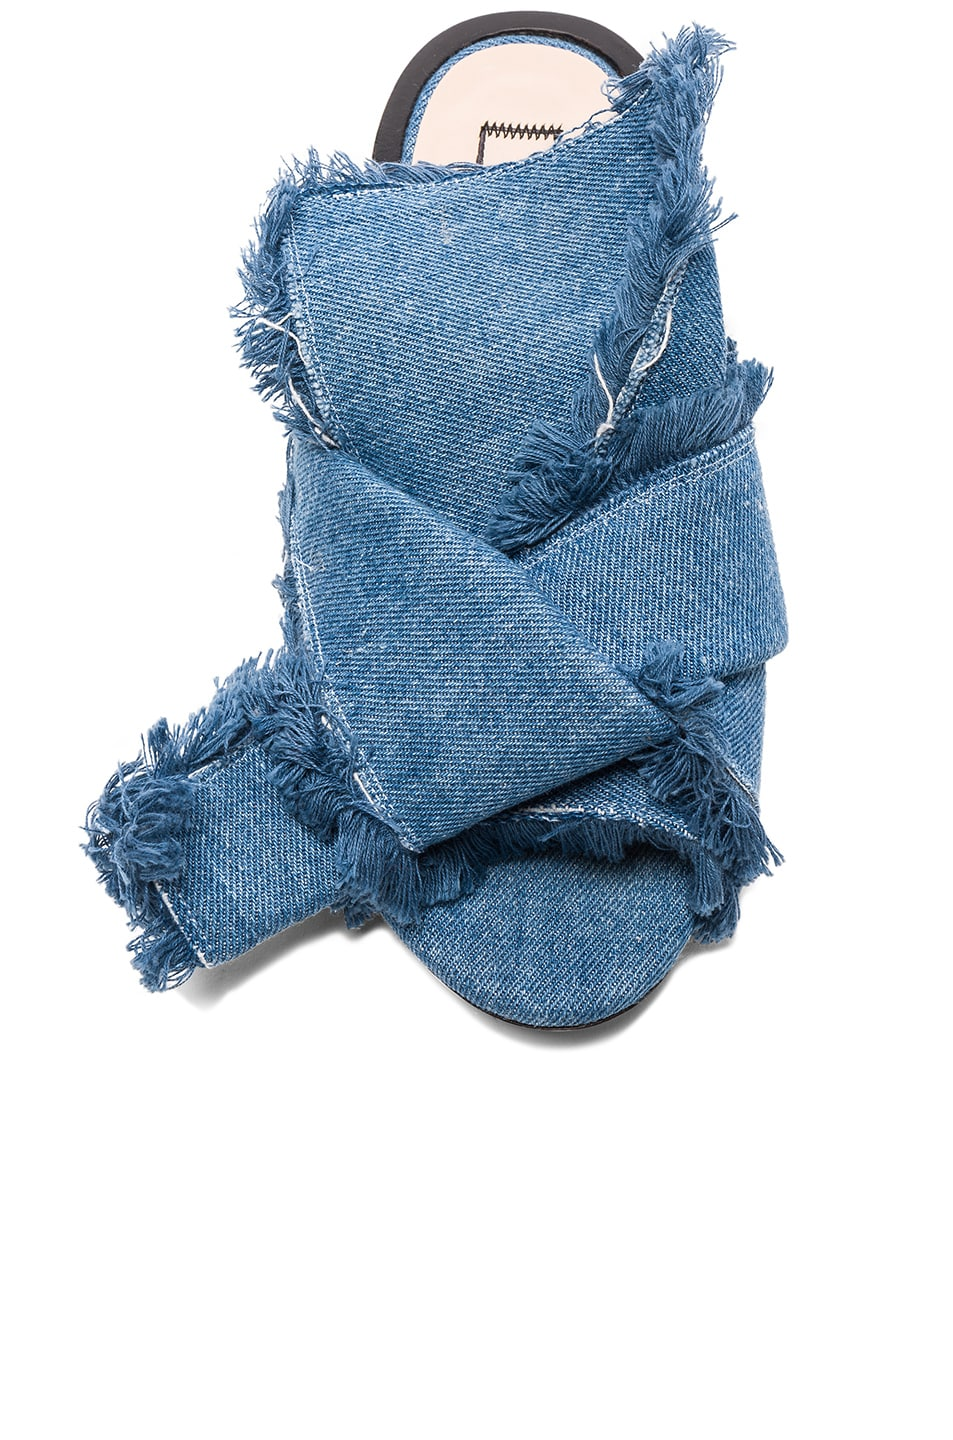 Image 4 of No. 21 Bow Denim Mules in Denim Blue